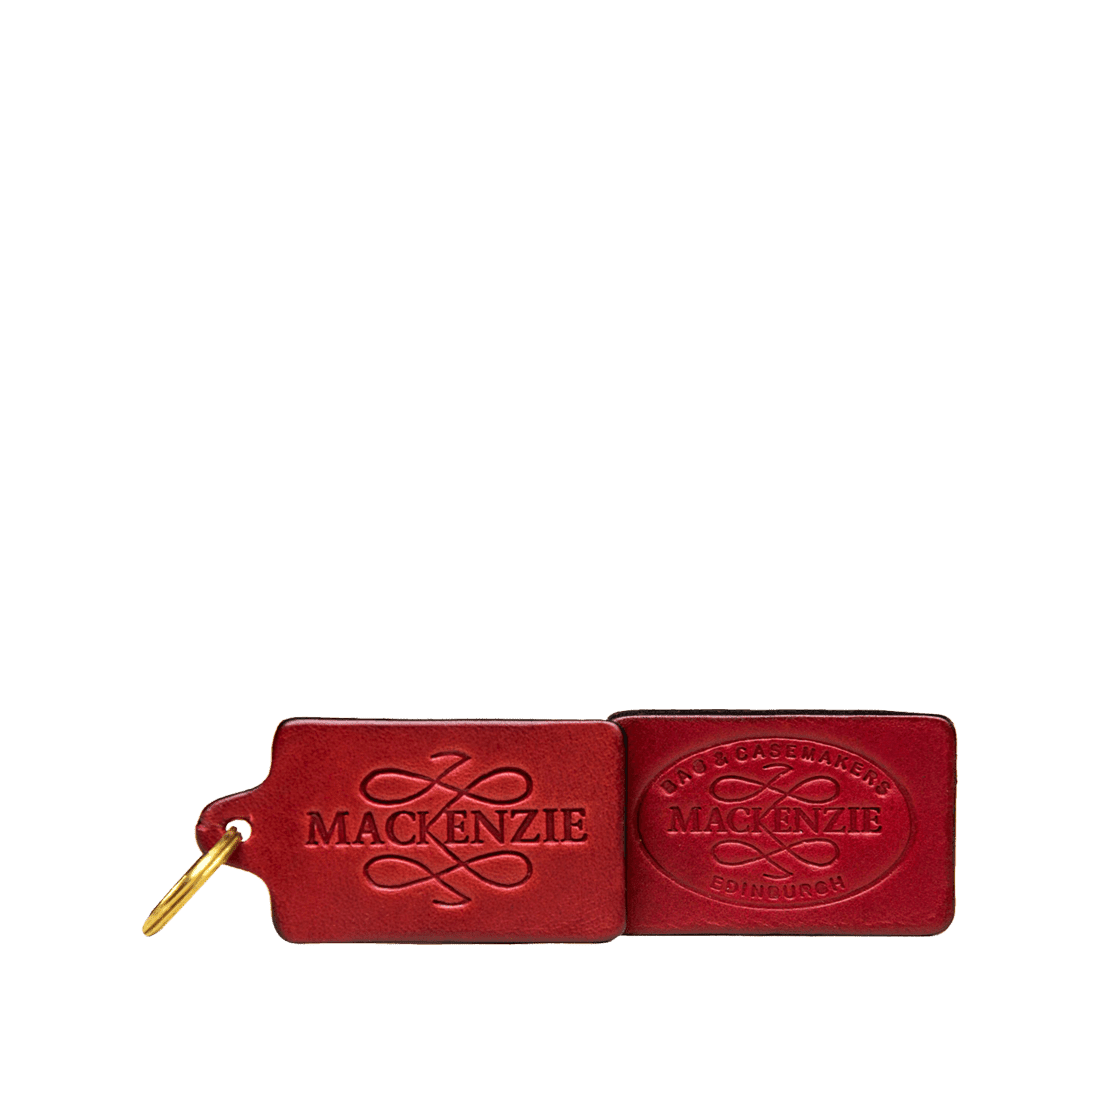 MacKenzie Leather luggage tag